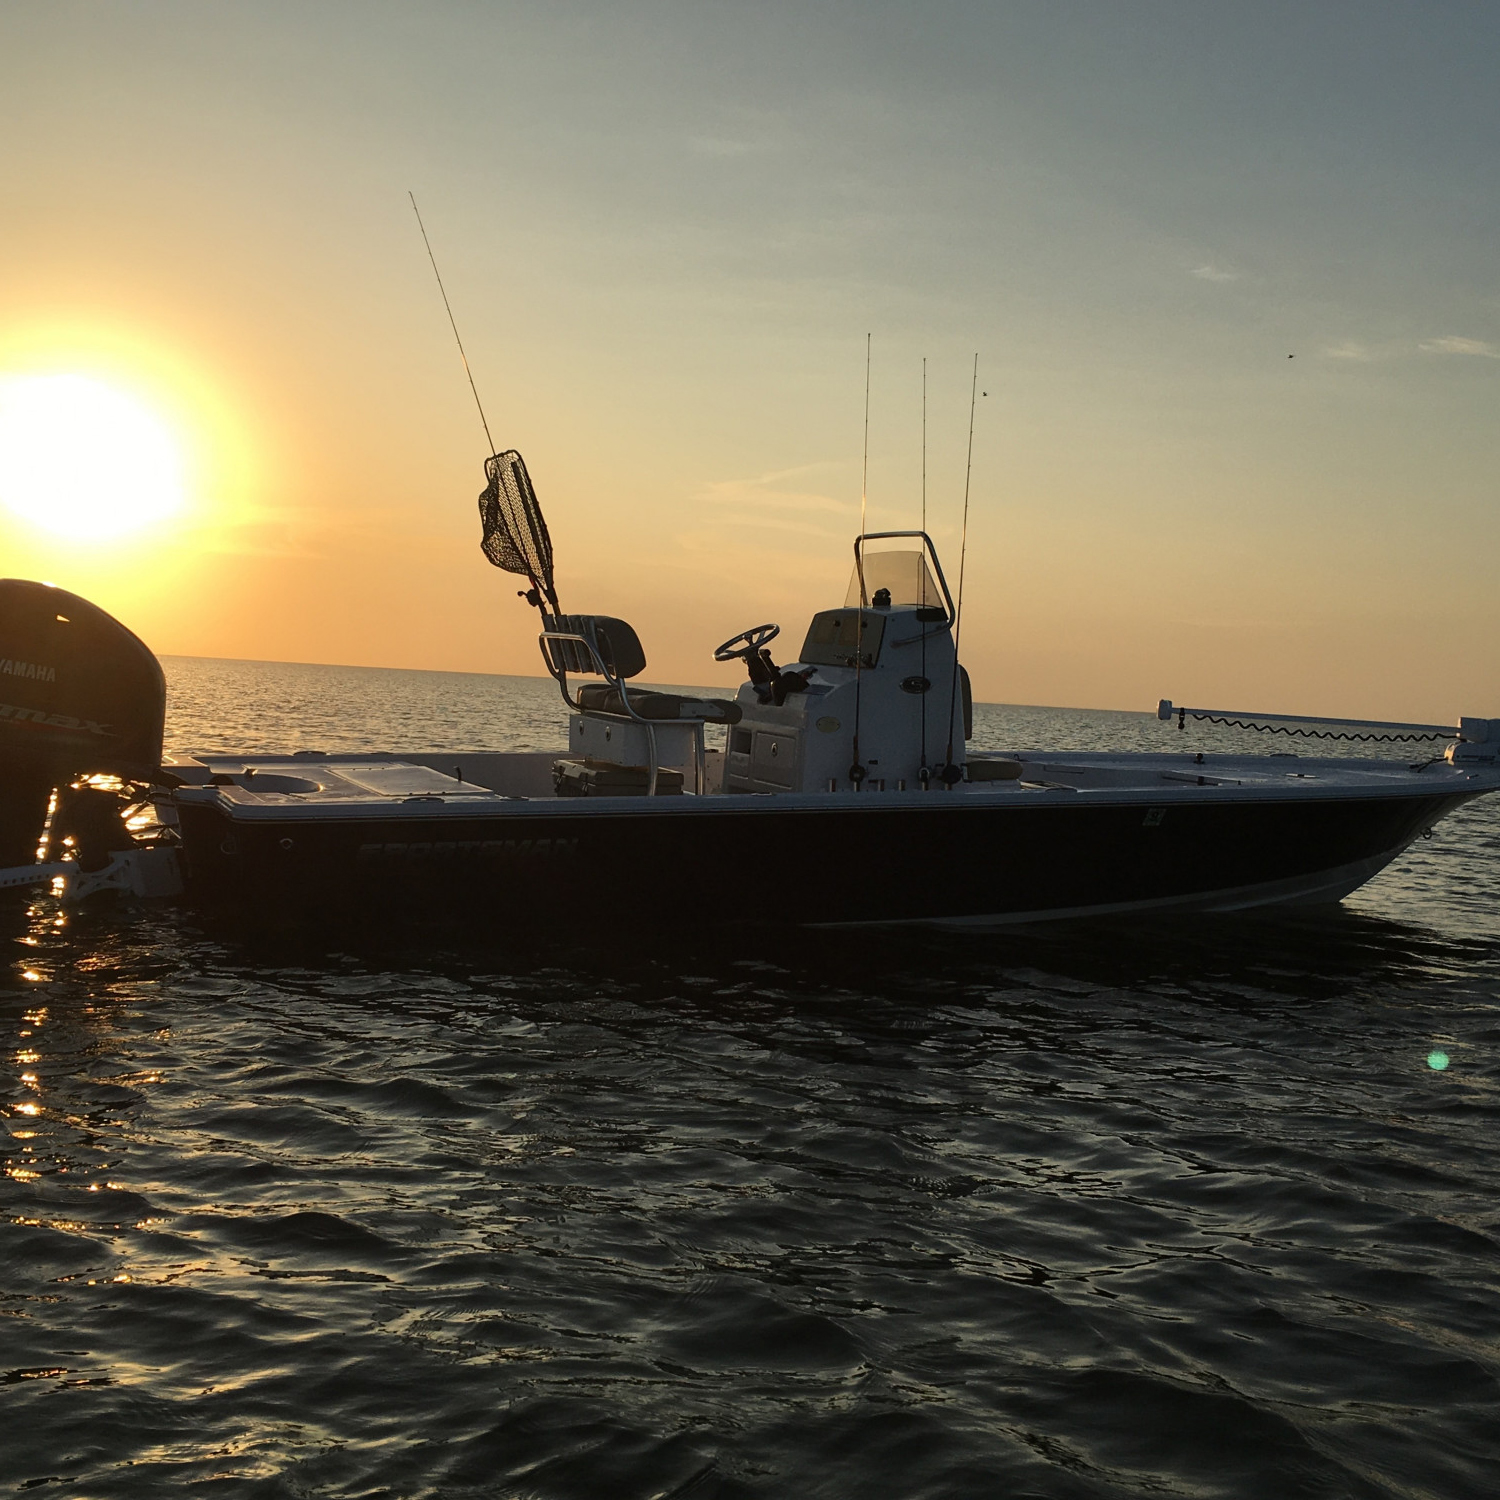 Title: Wade fishing - On board their Sportsman Tournament 234 Bay Boat - Location: East Galveston Bay, Texas. Participating in the Photo Contest #SportsmanApril2018